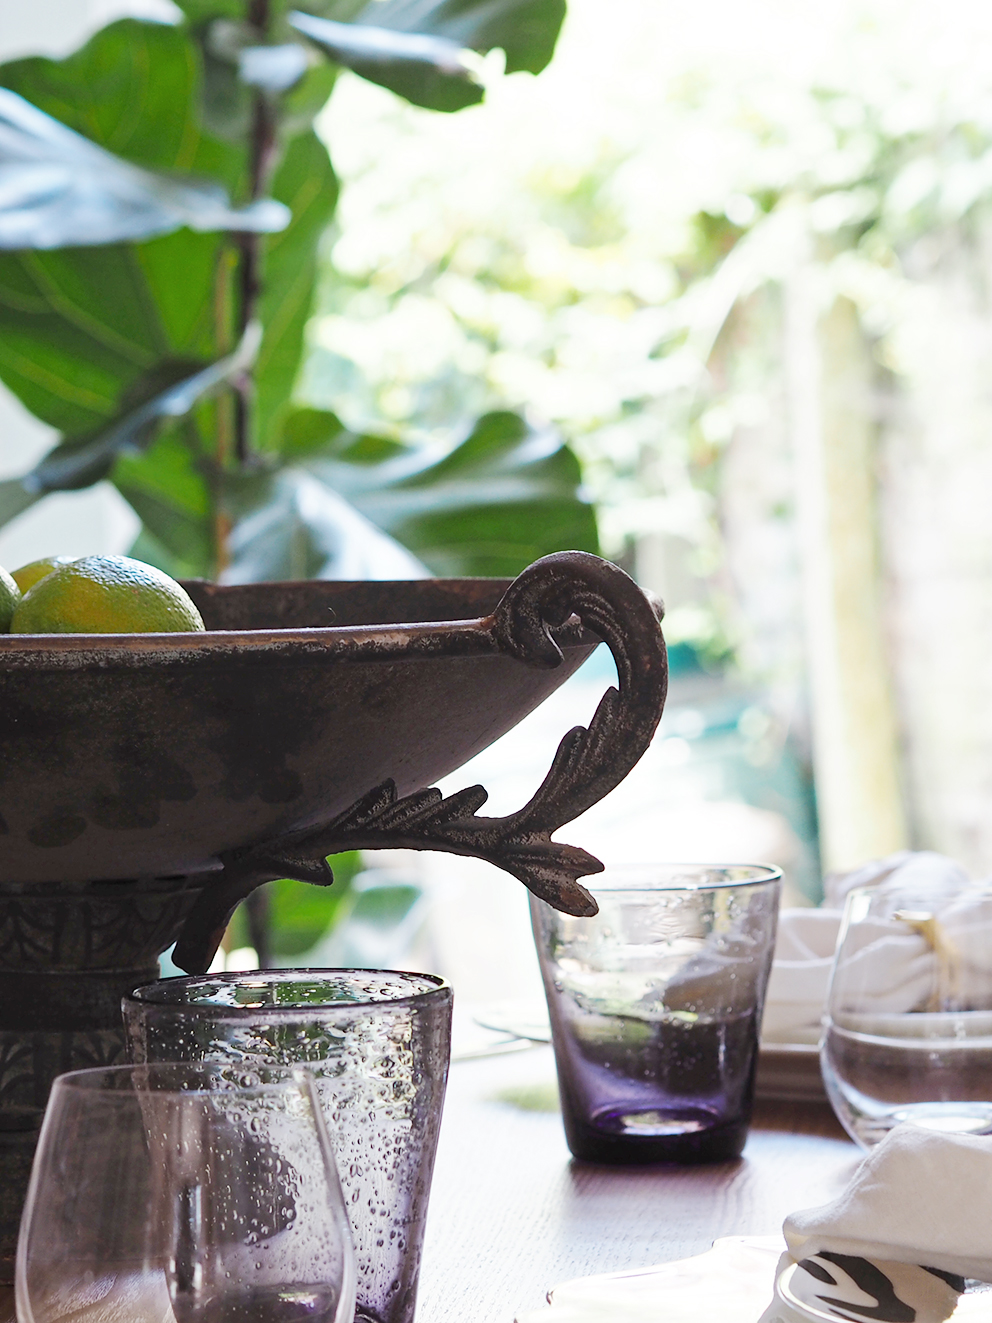 My Summer Dining Room - French For Pineapple Blog - close up of footed bowl on table